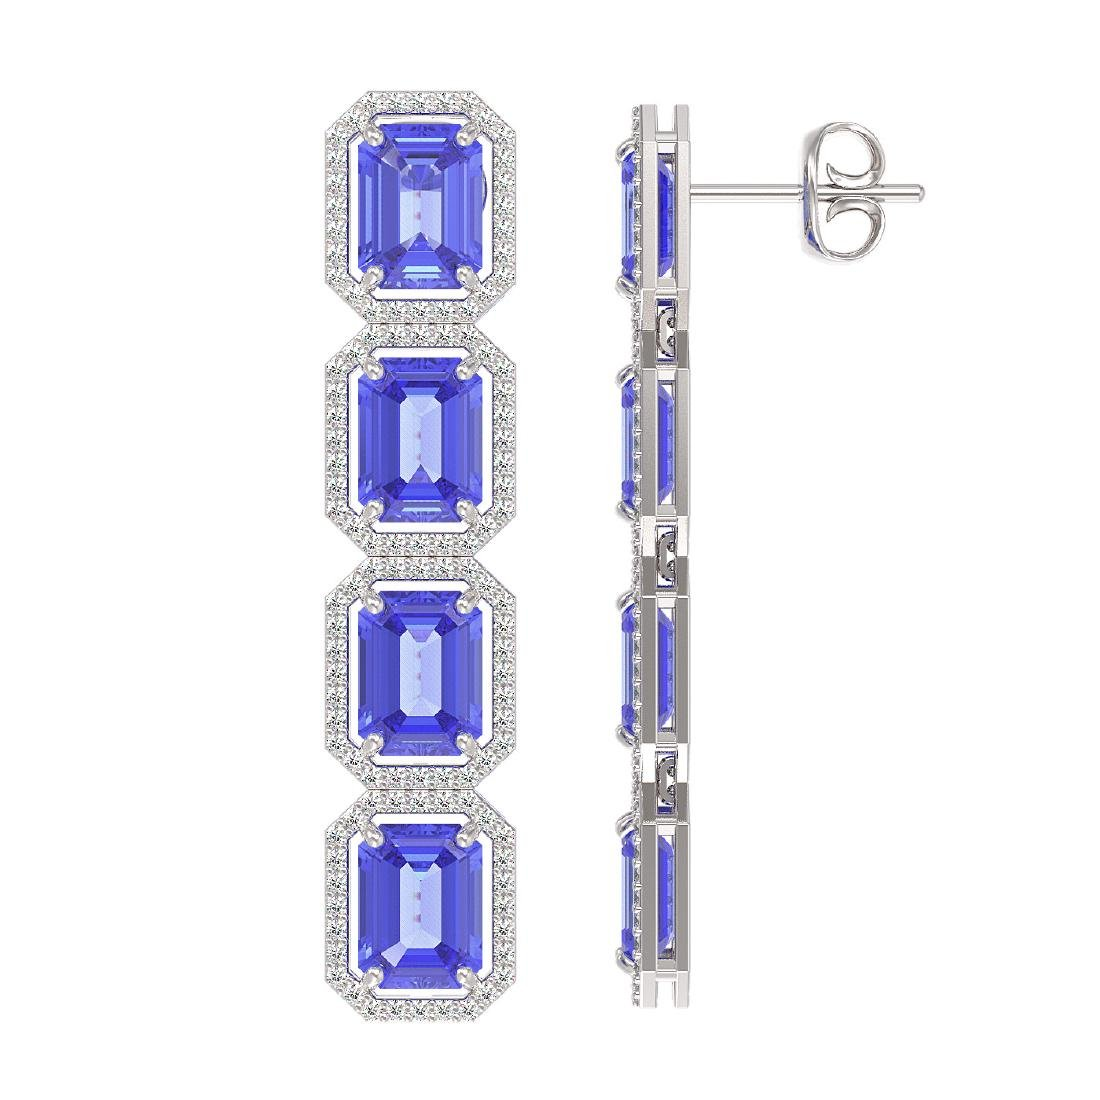 19.39 CTW Tanzanite & Diamond Halo Earrings 10K White - 2